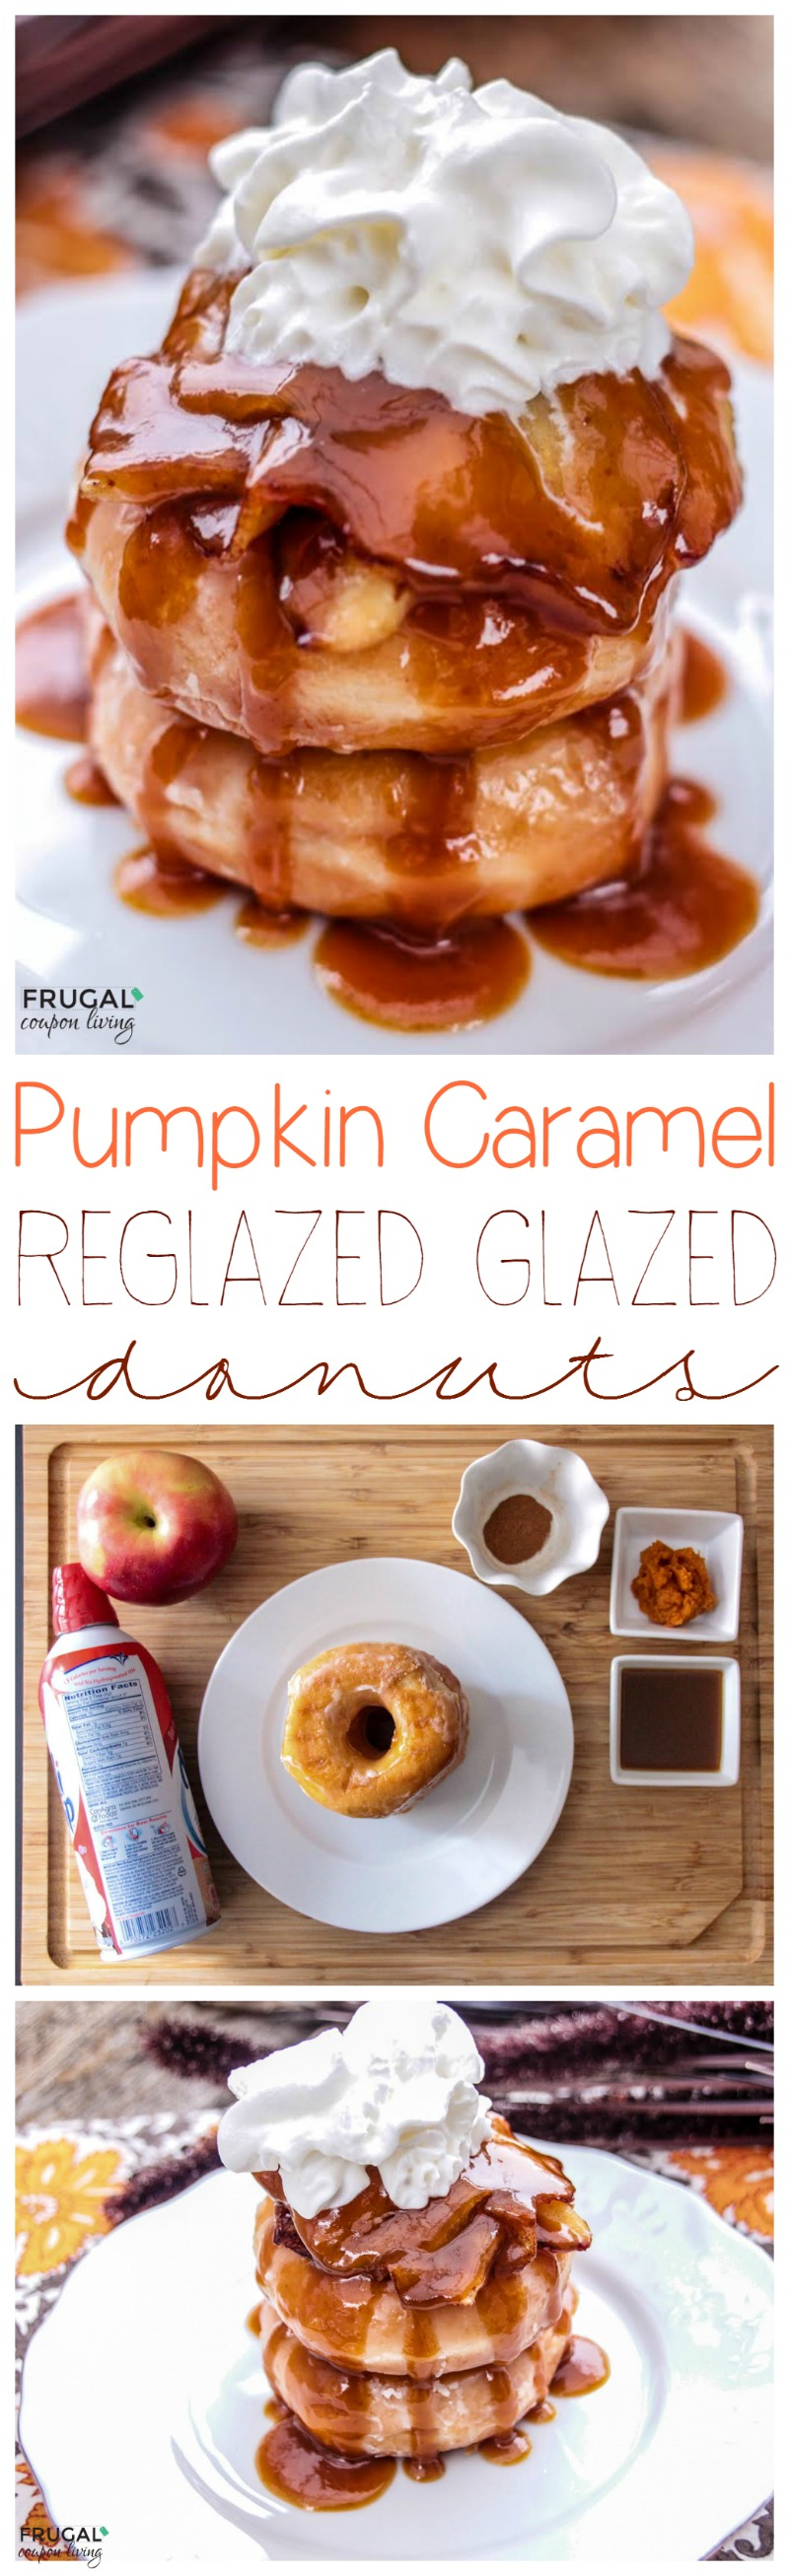 Pumpkin Caramel Reglazed Glazed Donuts Smaller Collage